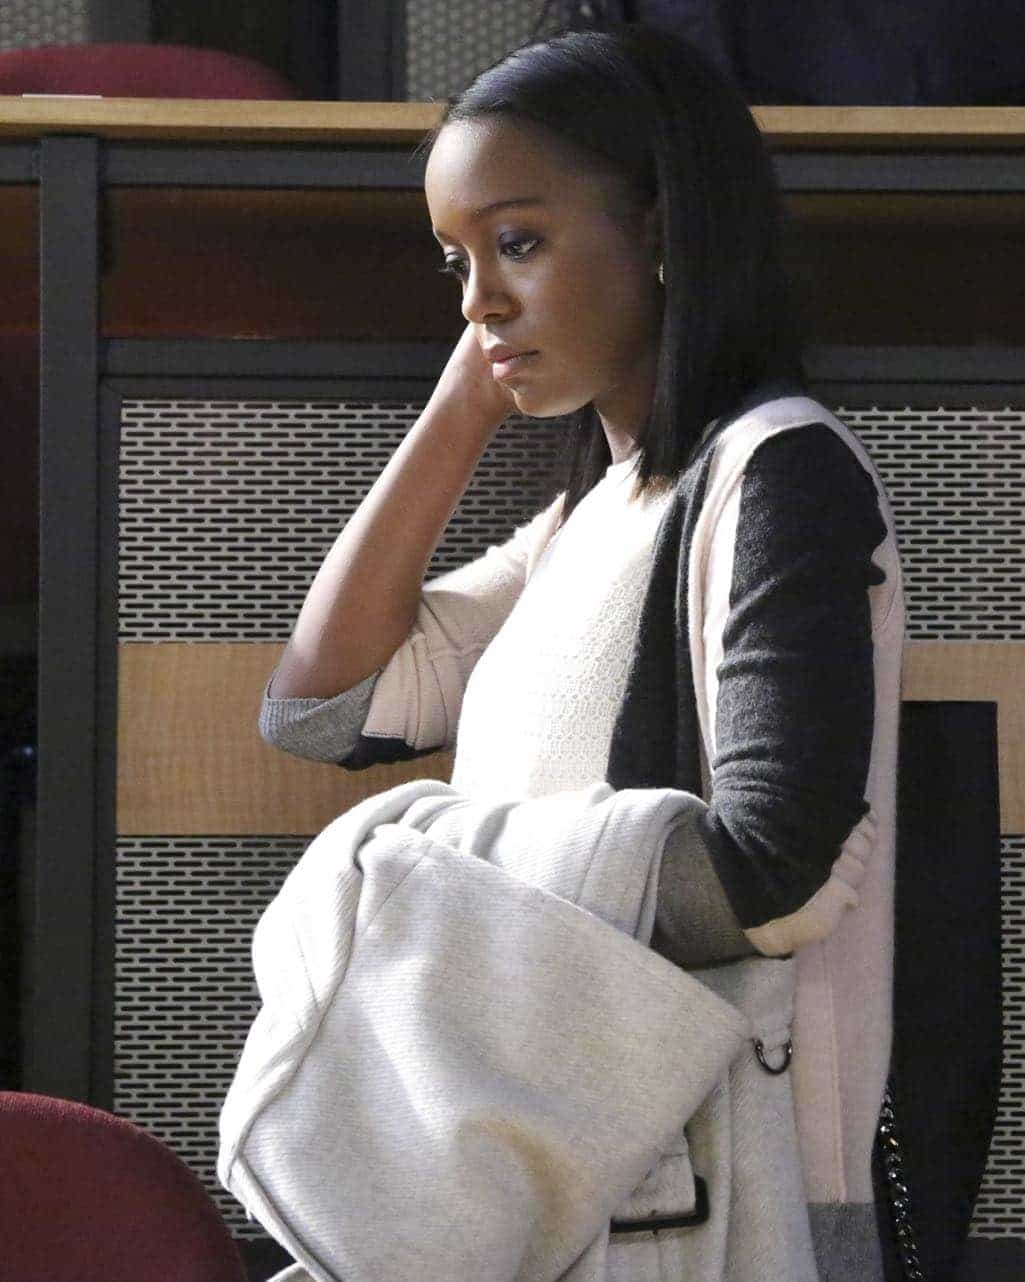 """HOW TO GET AWAY WITH MURDER - """"Is Someone Really Dead?"""" - A revelation in the Wallace Mahoney murder rattles Annalise and the Keating 5, as the team takes on the case of a veteran facing assault charges, on """"How to Get Away with Murder,"""" THURSDAY, OCTOBER 27 (10:00-11:00 p.m. EDT), on the ABC Television Network. (ABC/Mitch Haaseth) AJA NAOMI KING"""